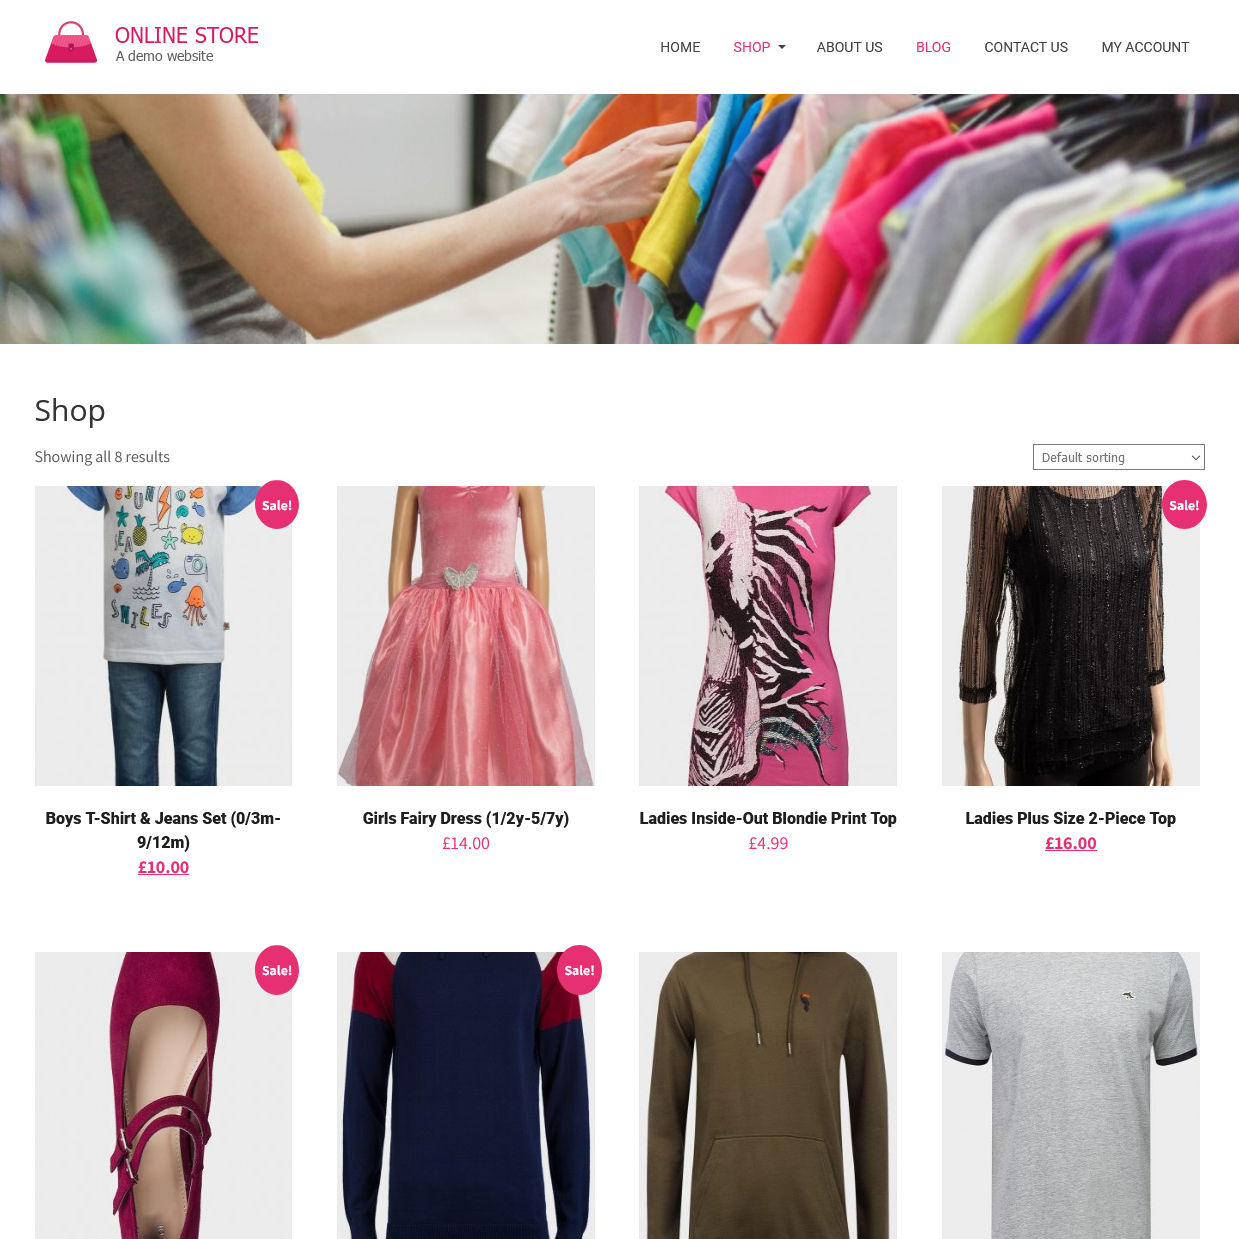 Online Store, E-Commerce Website, Online Shop Design